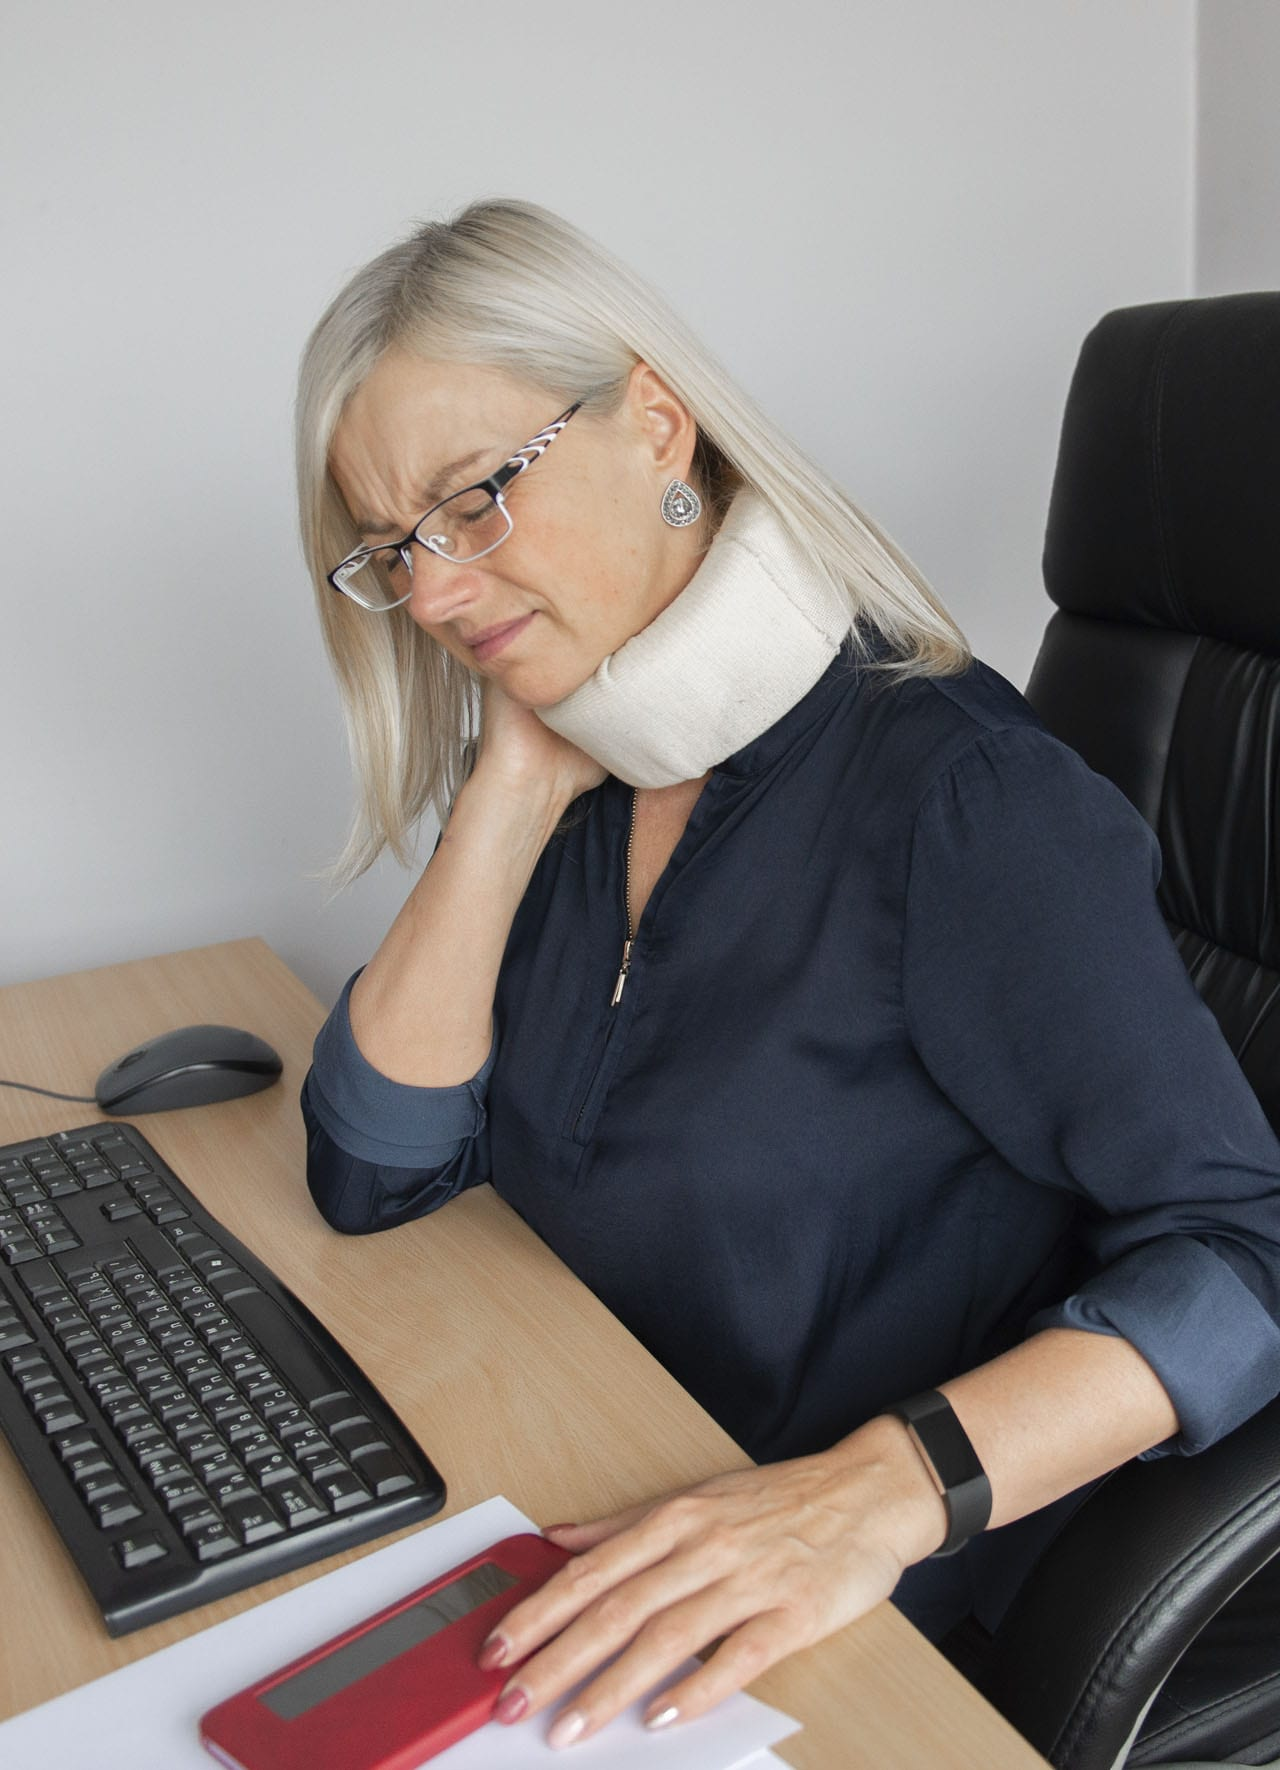 Injury Related Stress And Anxiety Addressed With Chiropractic Care